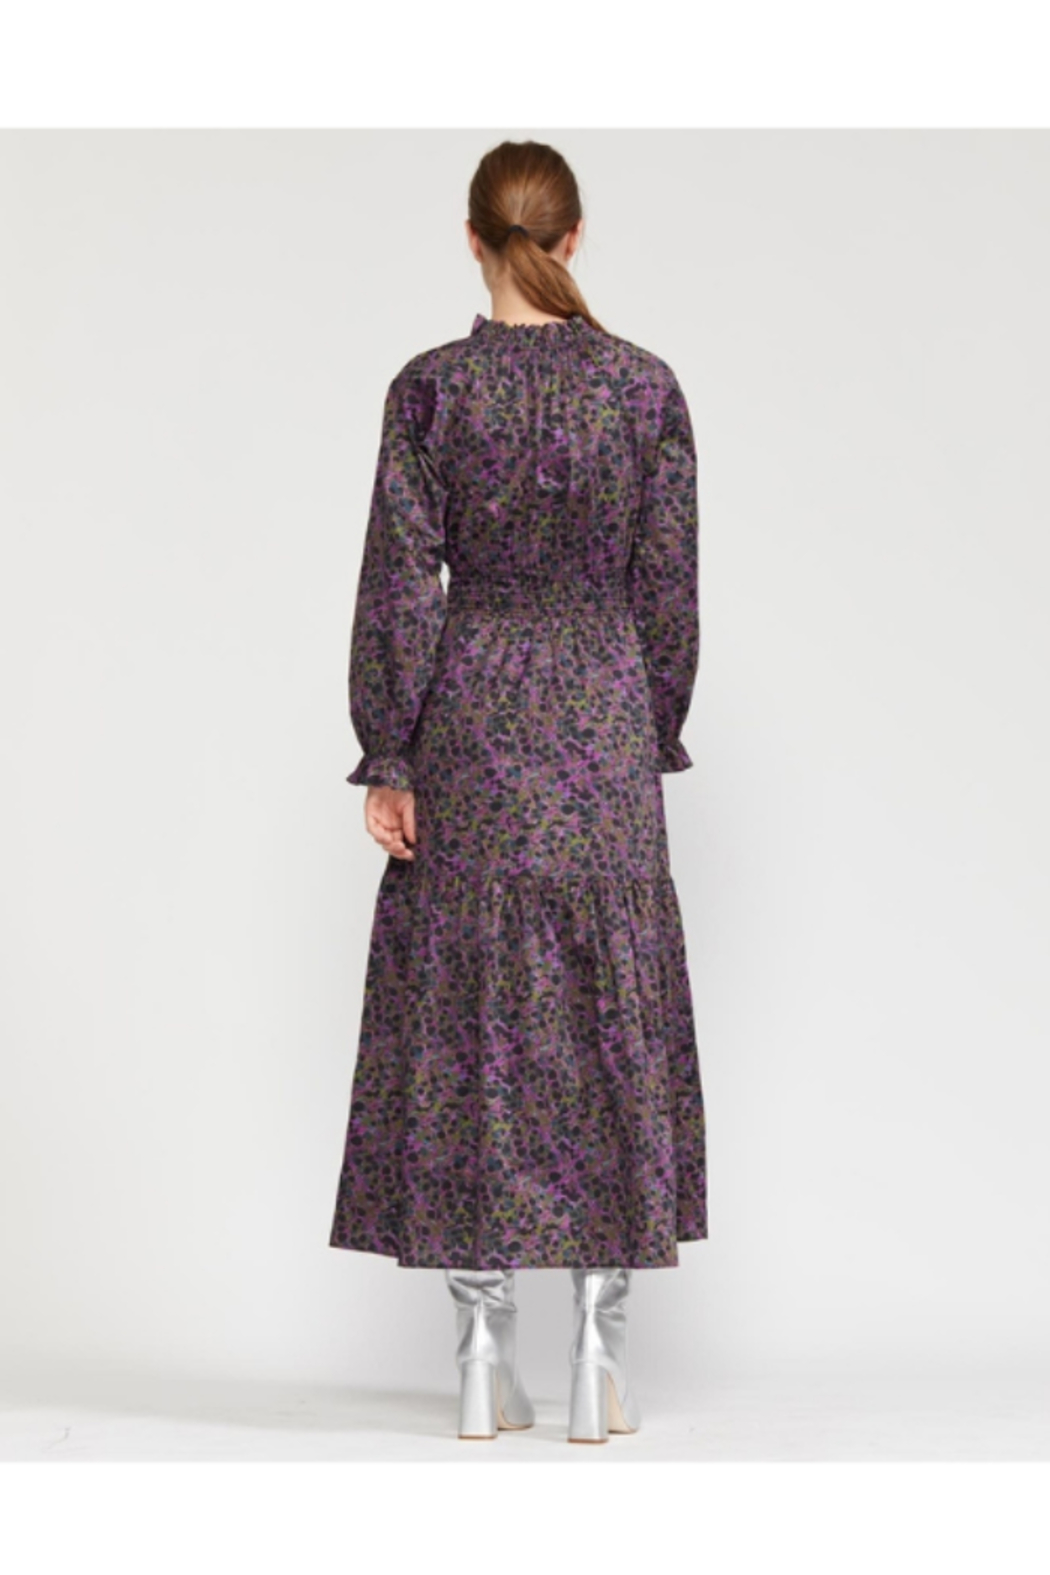 Cynthia Rowley Marbelle Smocked Waist Printed Cotton Dress - Side Cropped Image